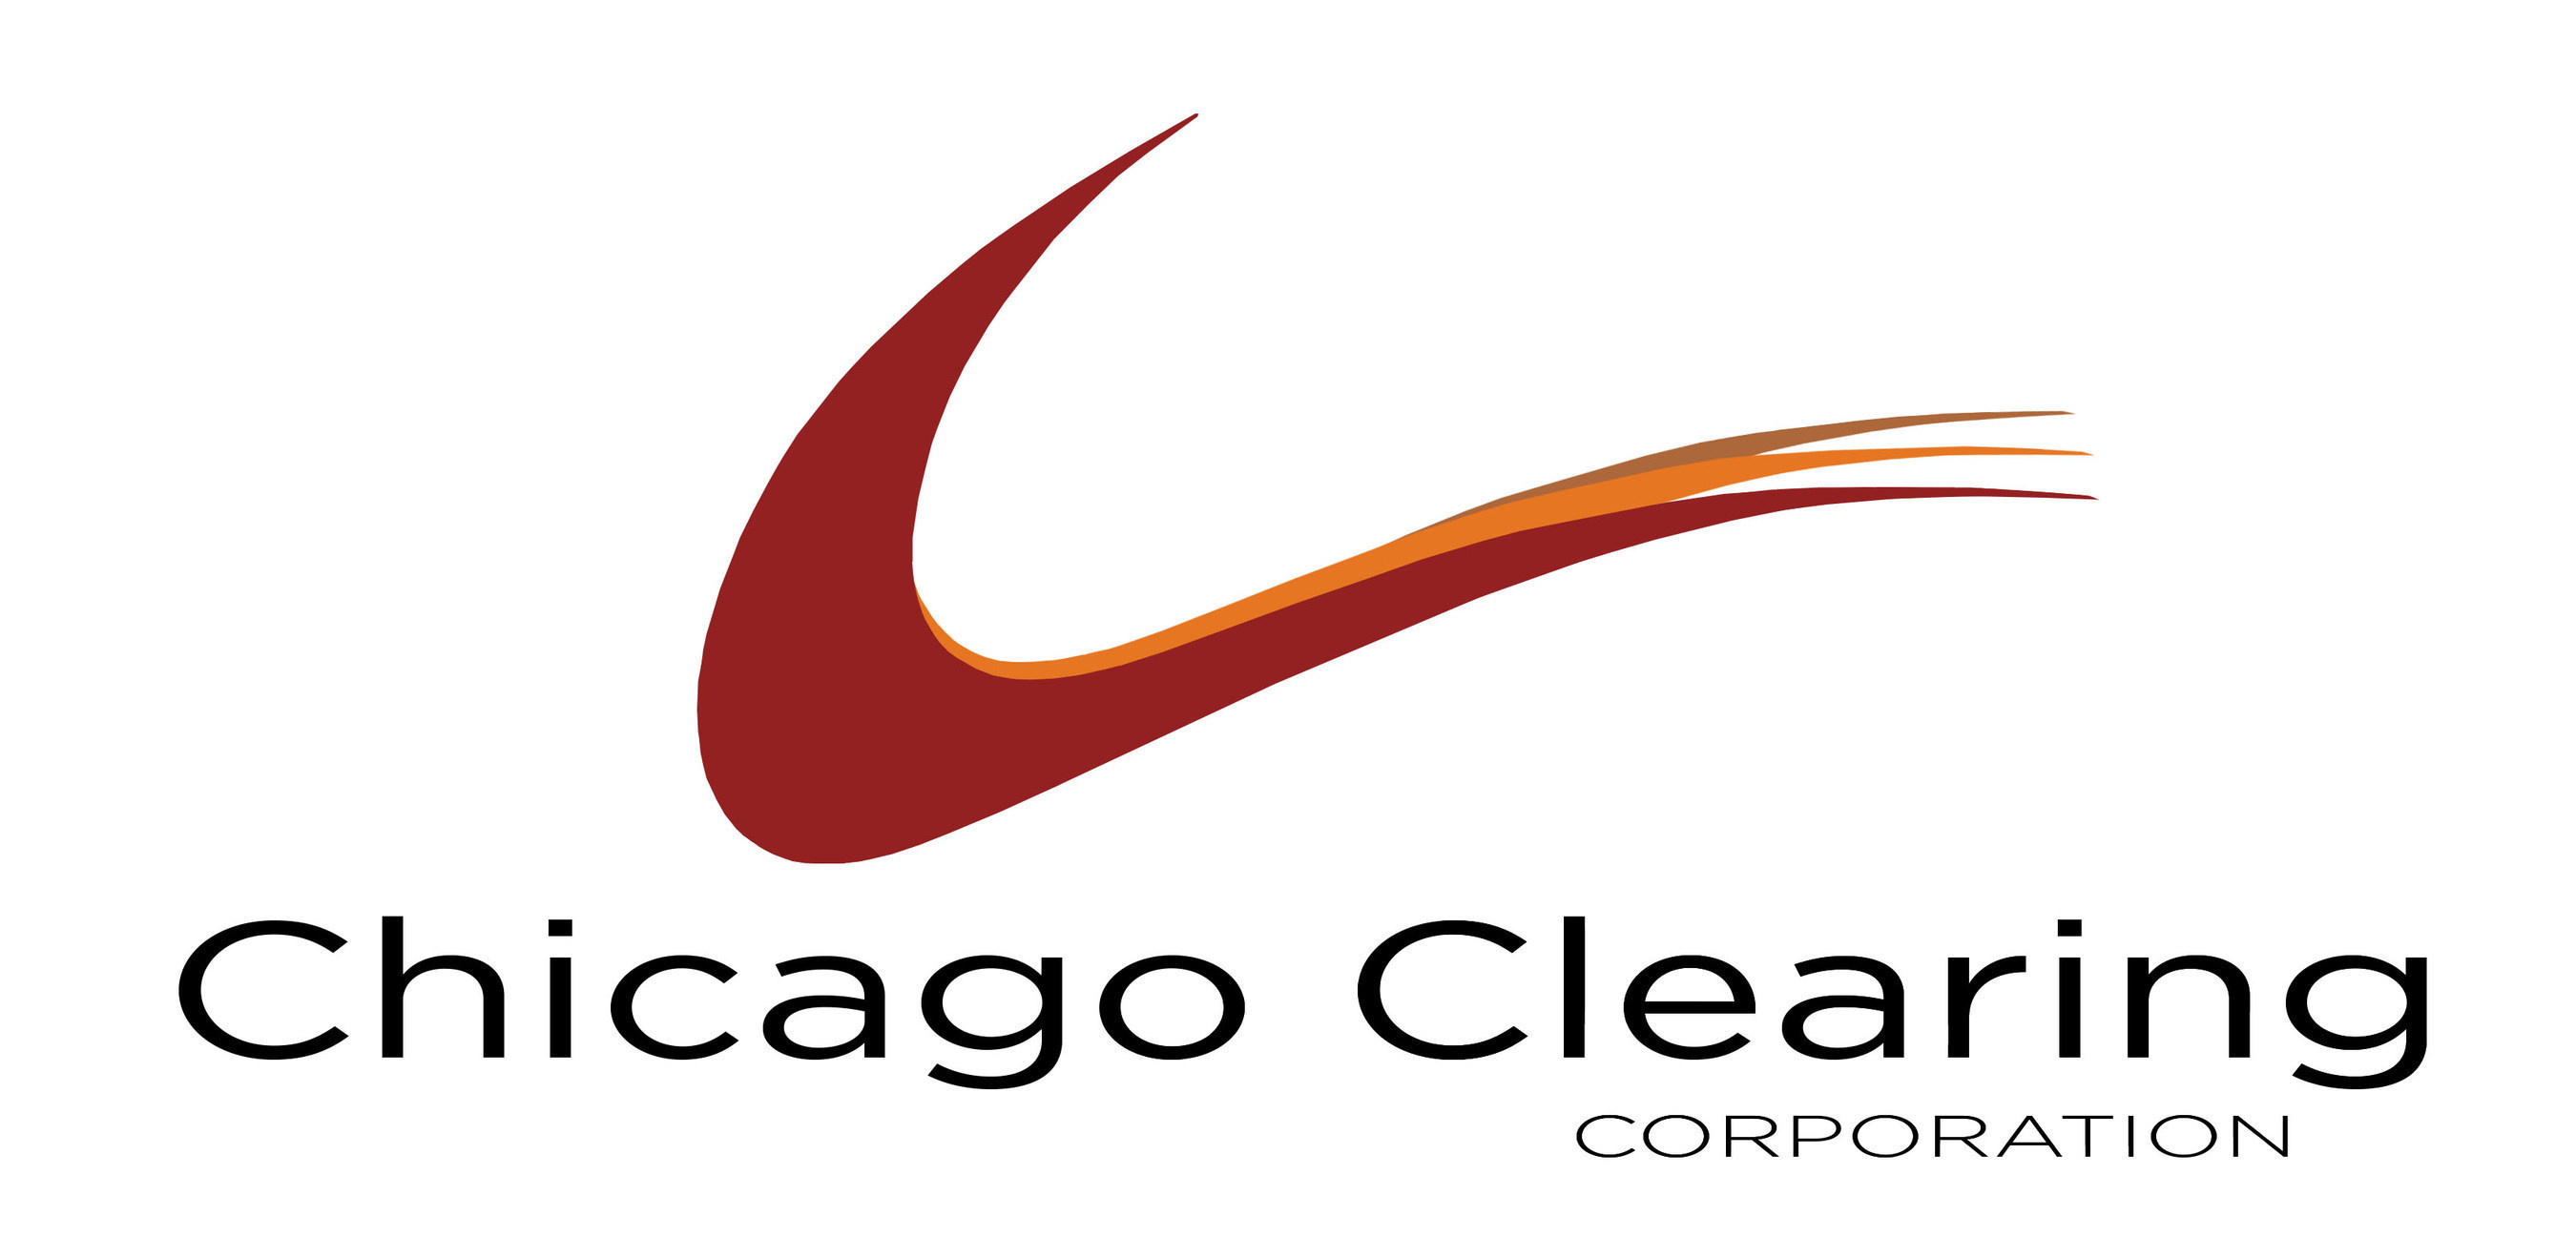 Chicago Clearing Corporation Logo